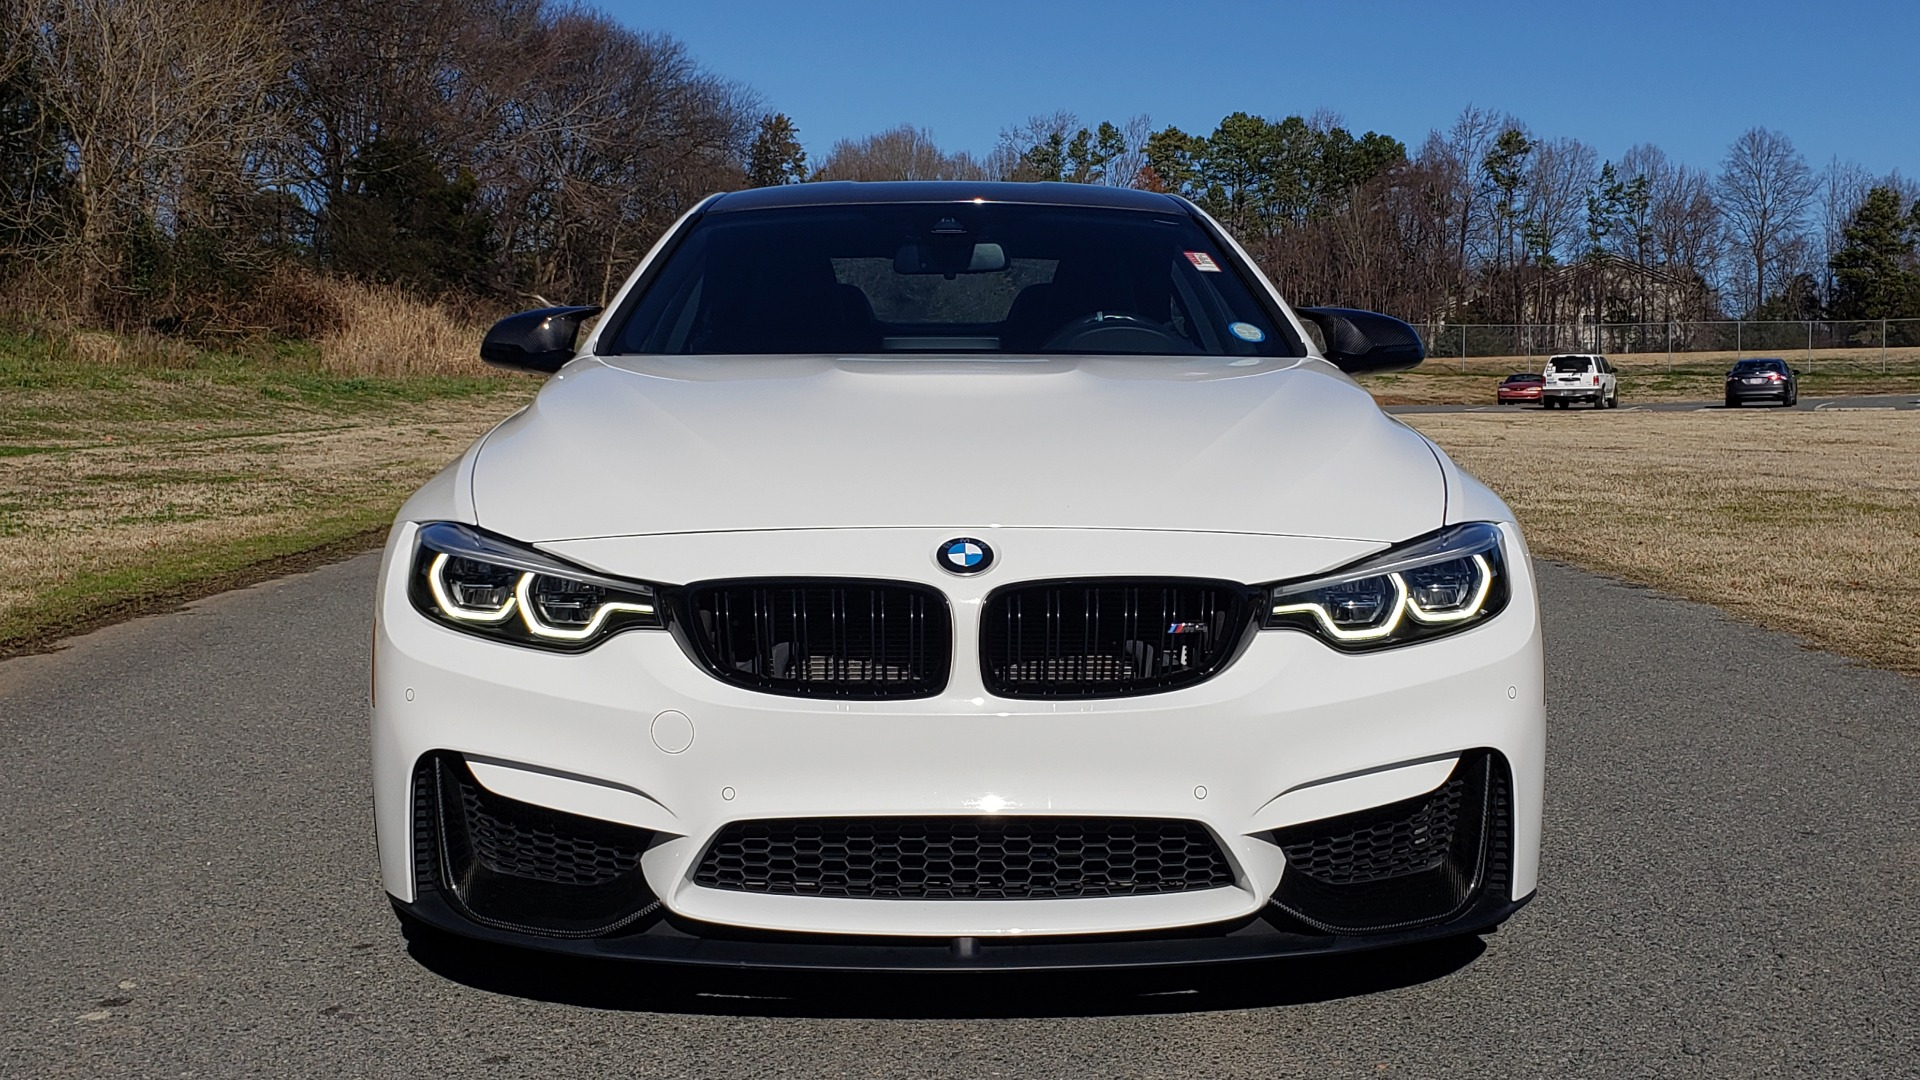 Used 2018 BMW M4 COMP PKG / EXEC / M-DRIVER / PARK CNTRL / ACTIVE BLIND SPOT for sale Sold at Formula Imports in Charlotte NC 28227 12